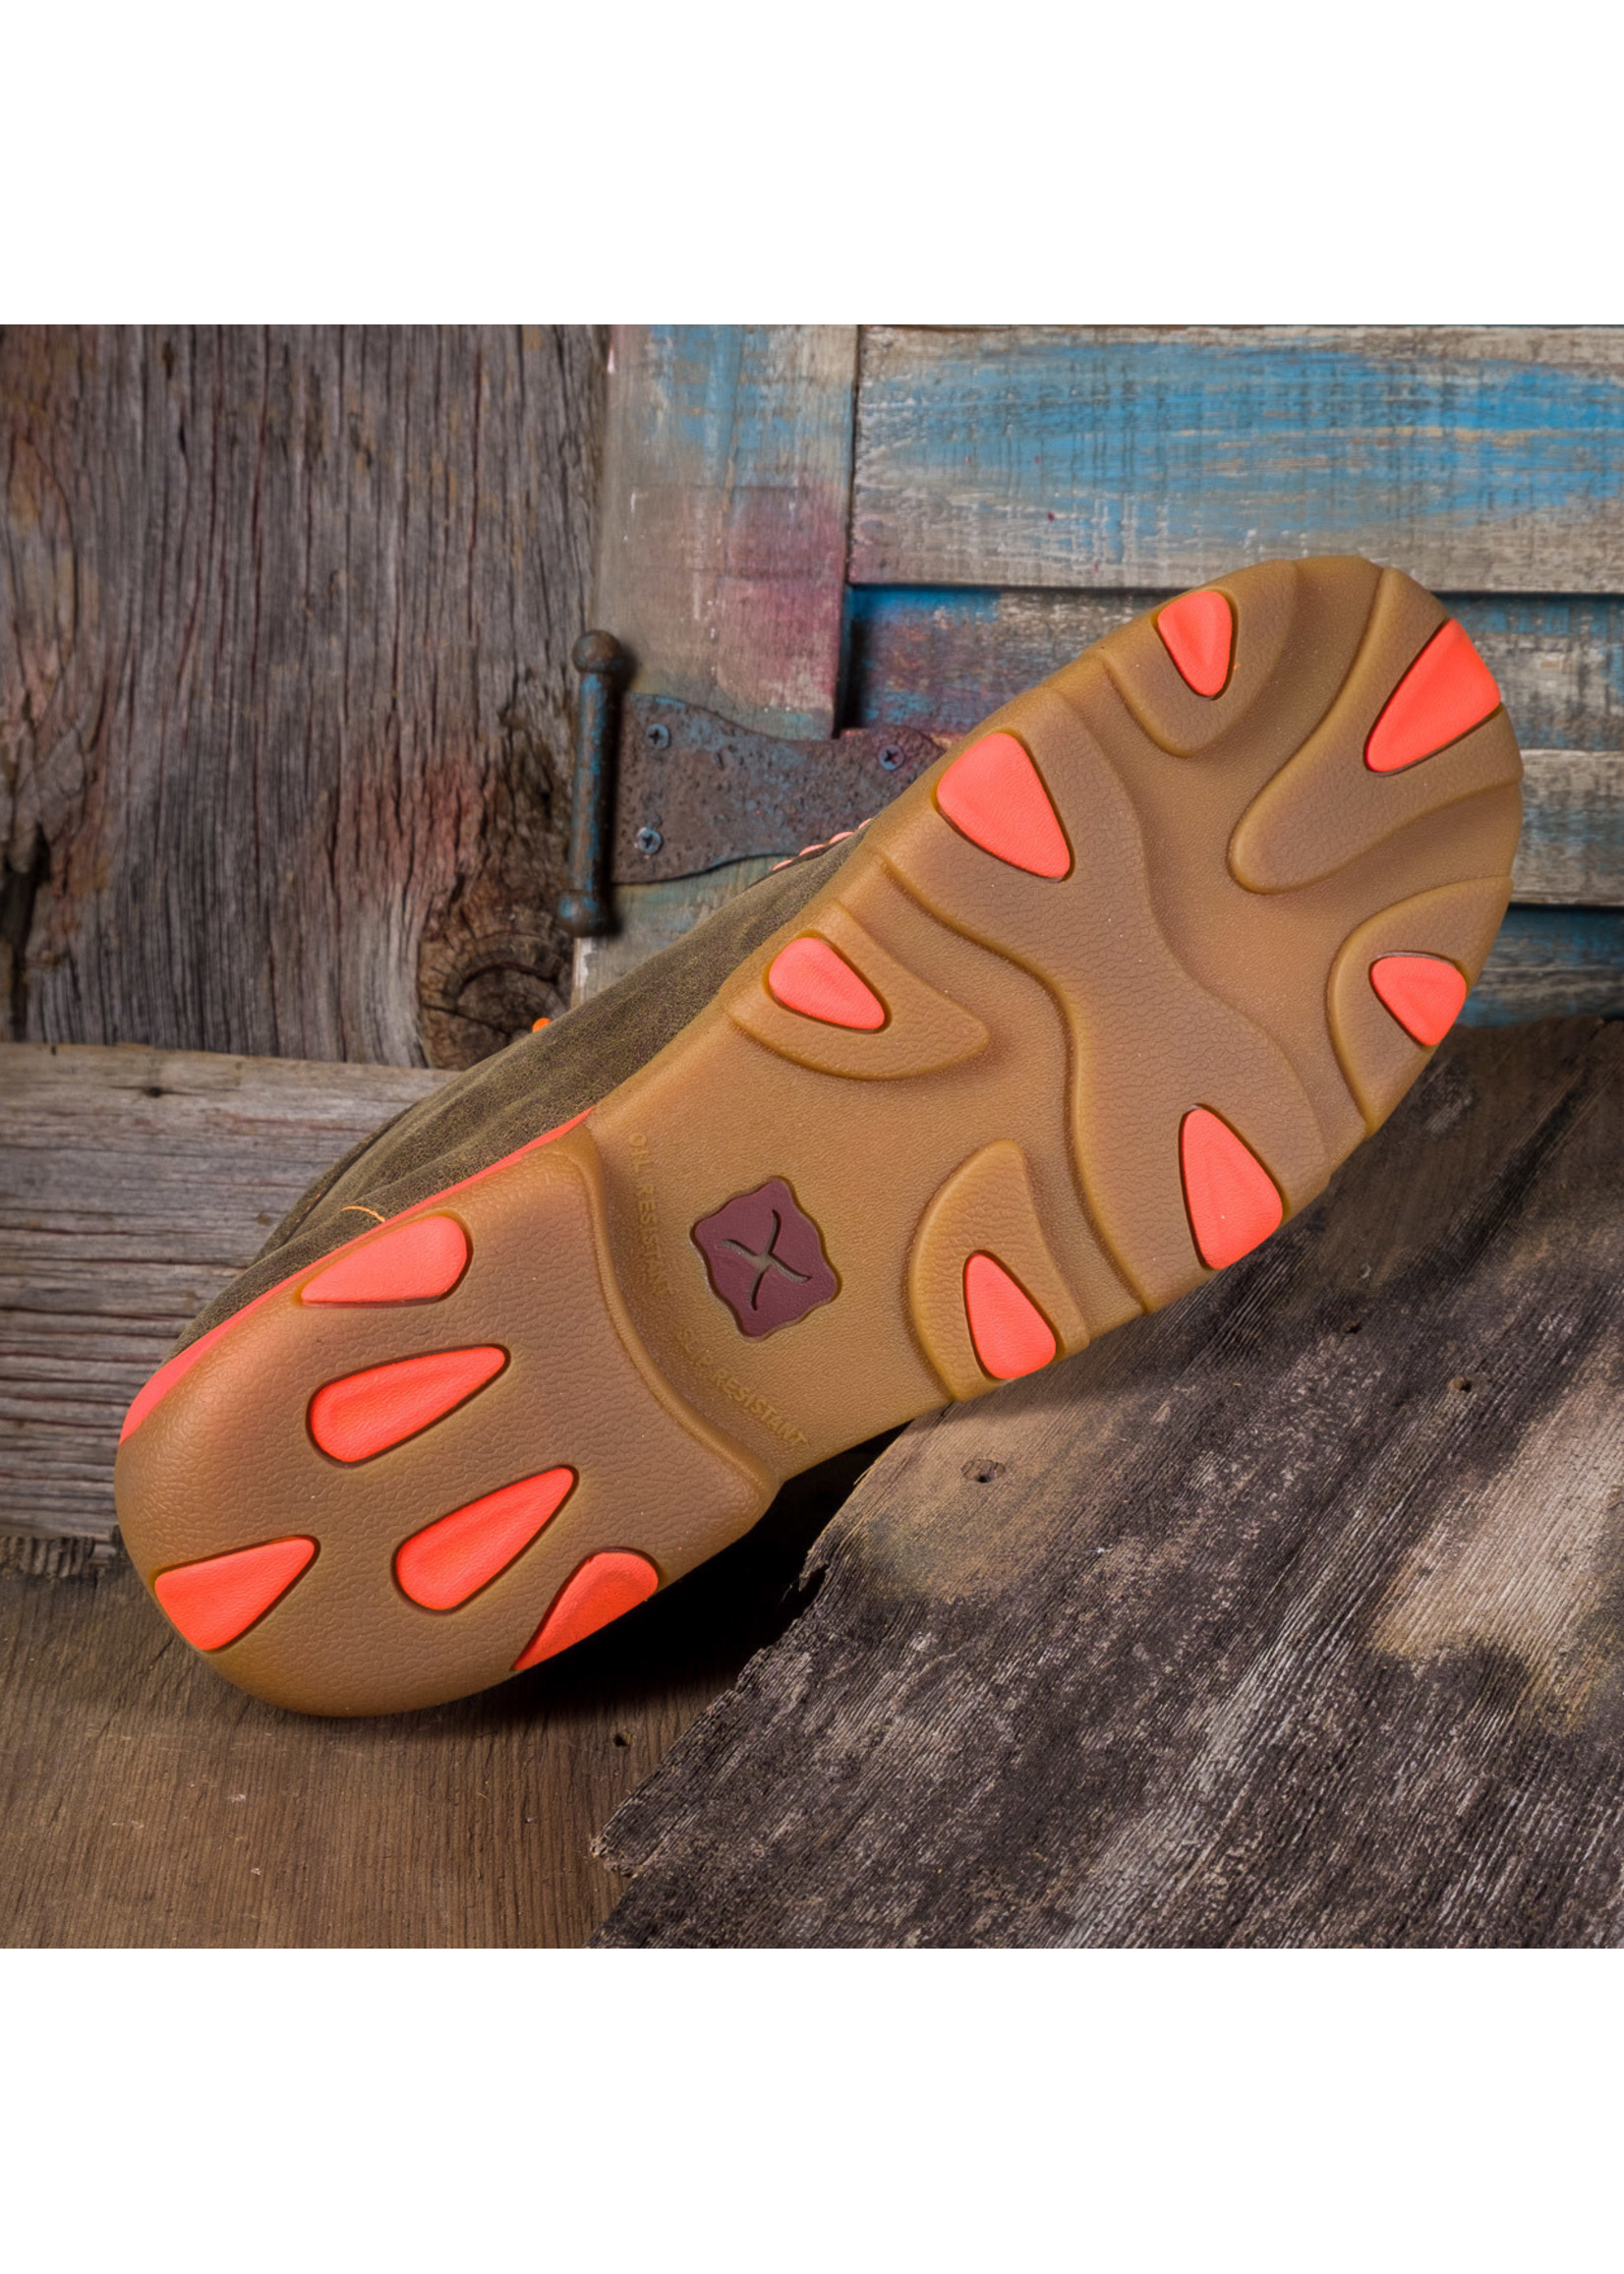 Twisted X Men's Driving Moccasins with Orange MDM0019